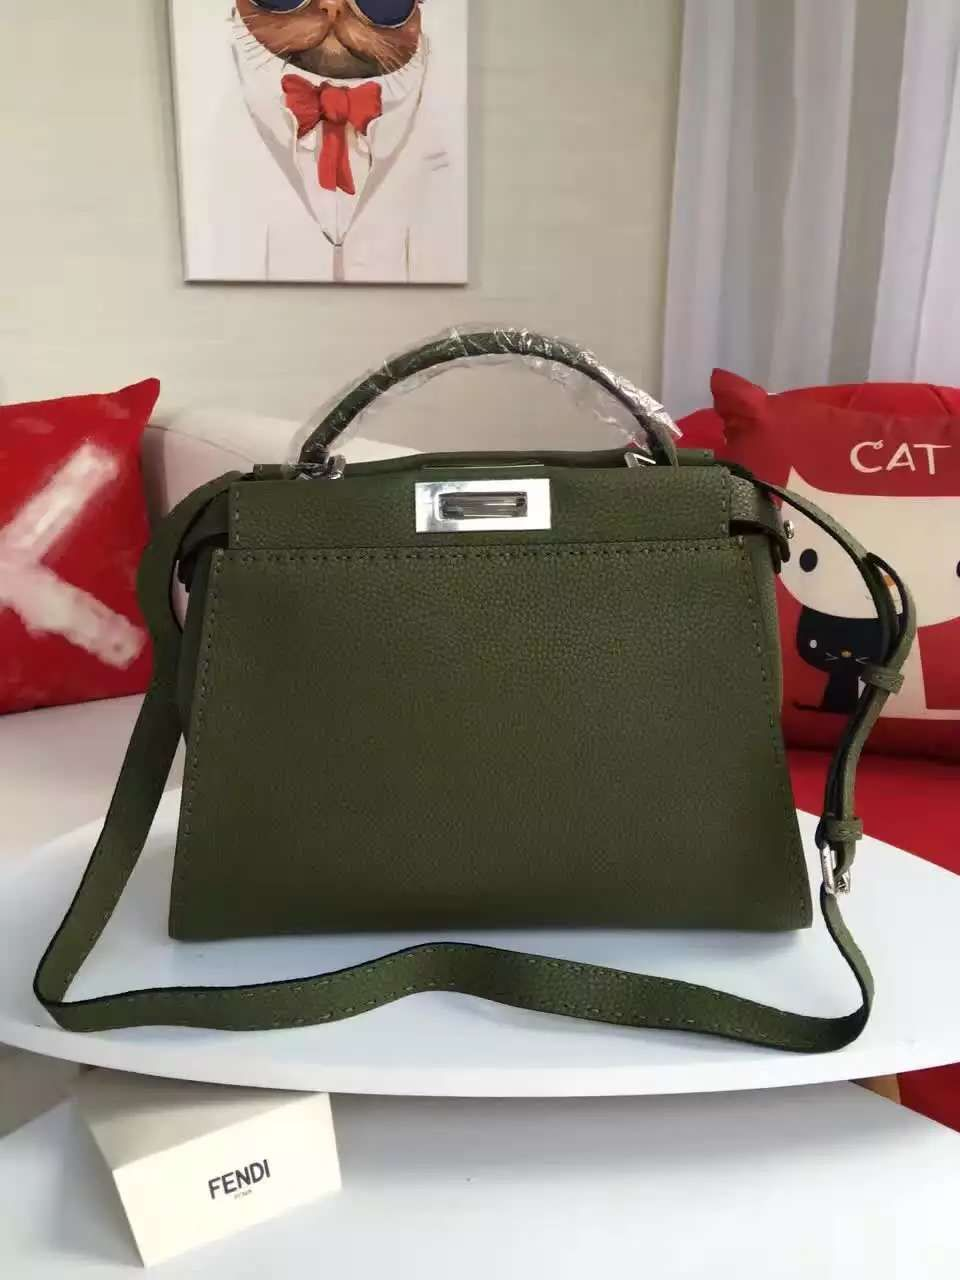 fendi Bag, ID : 63621(FORSALE:a@yybags.com), authentic fendi bags on sale, fendi book bags for boys, fendi slippers, fendi sale online, fendi hat mens, authentic fendi handbags, fendi zucca bag, fendi italy, fendi two tone bag, fendi external frame backpack, pre owned fendi bags, fendi leather briefcase men, fendi backpacks brands #fendiBag #fendi #blue #fendi